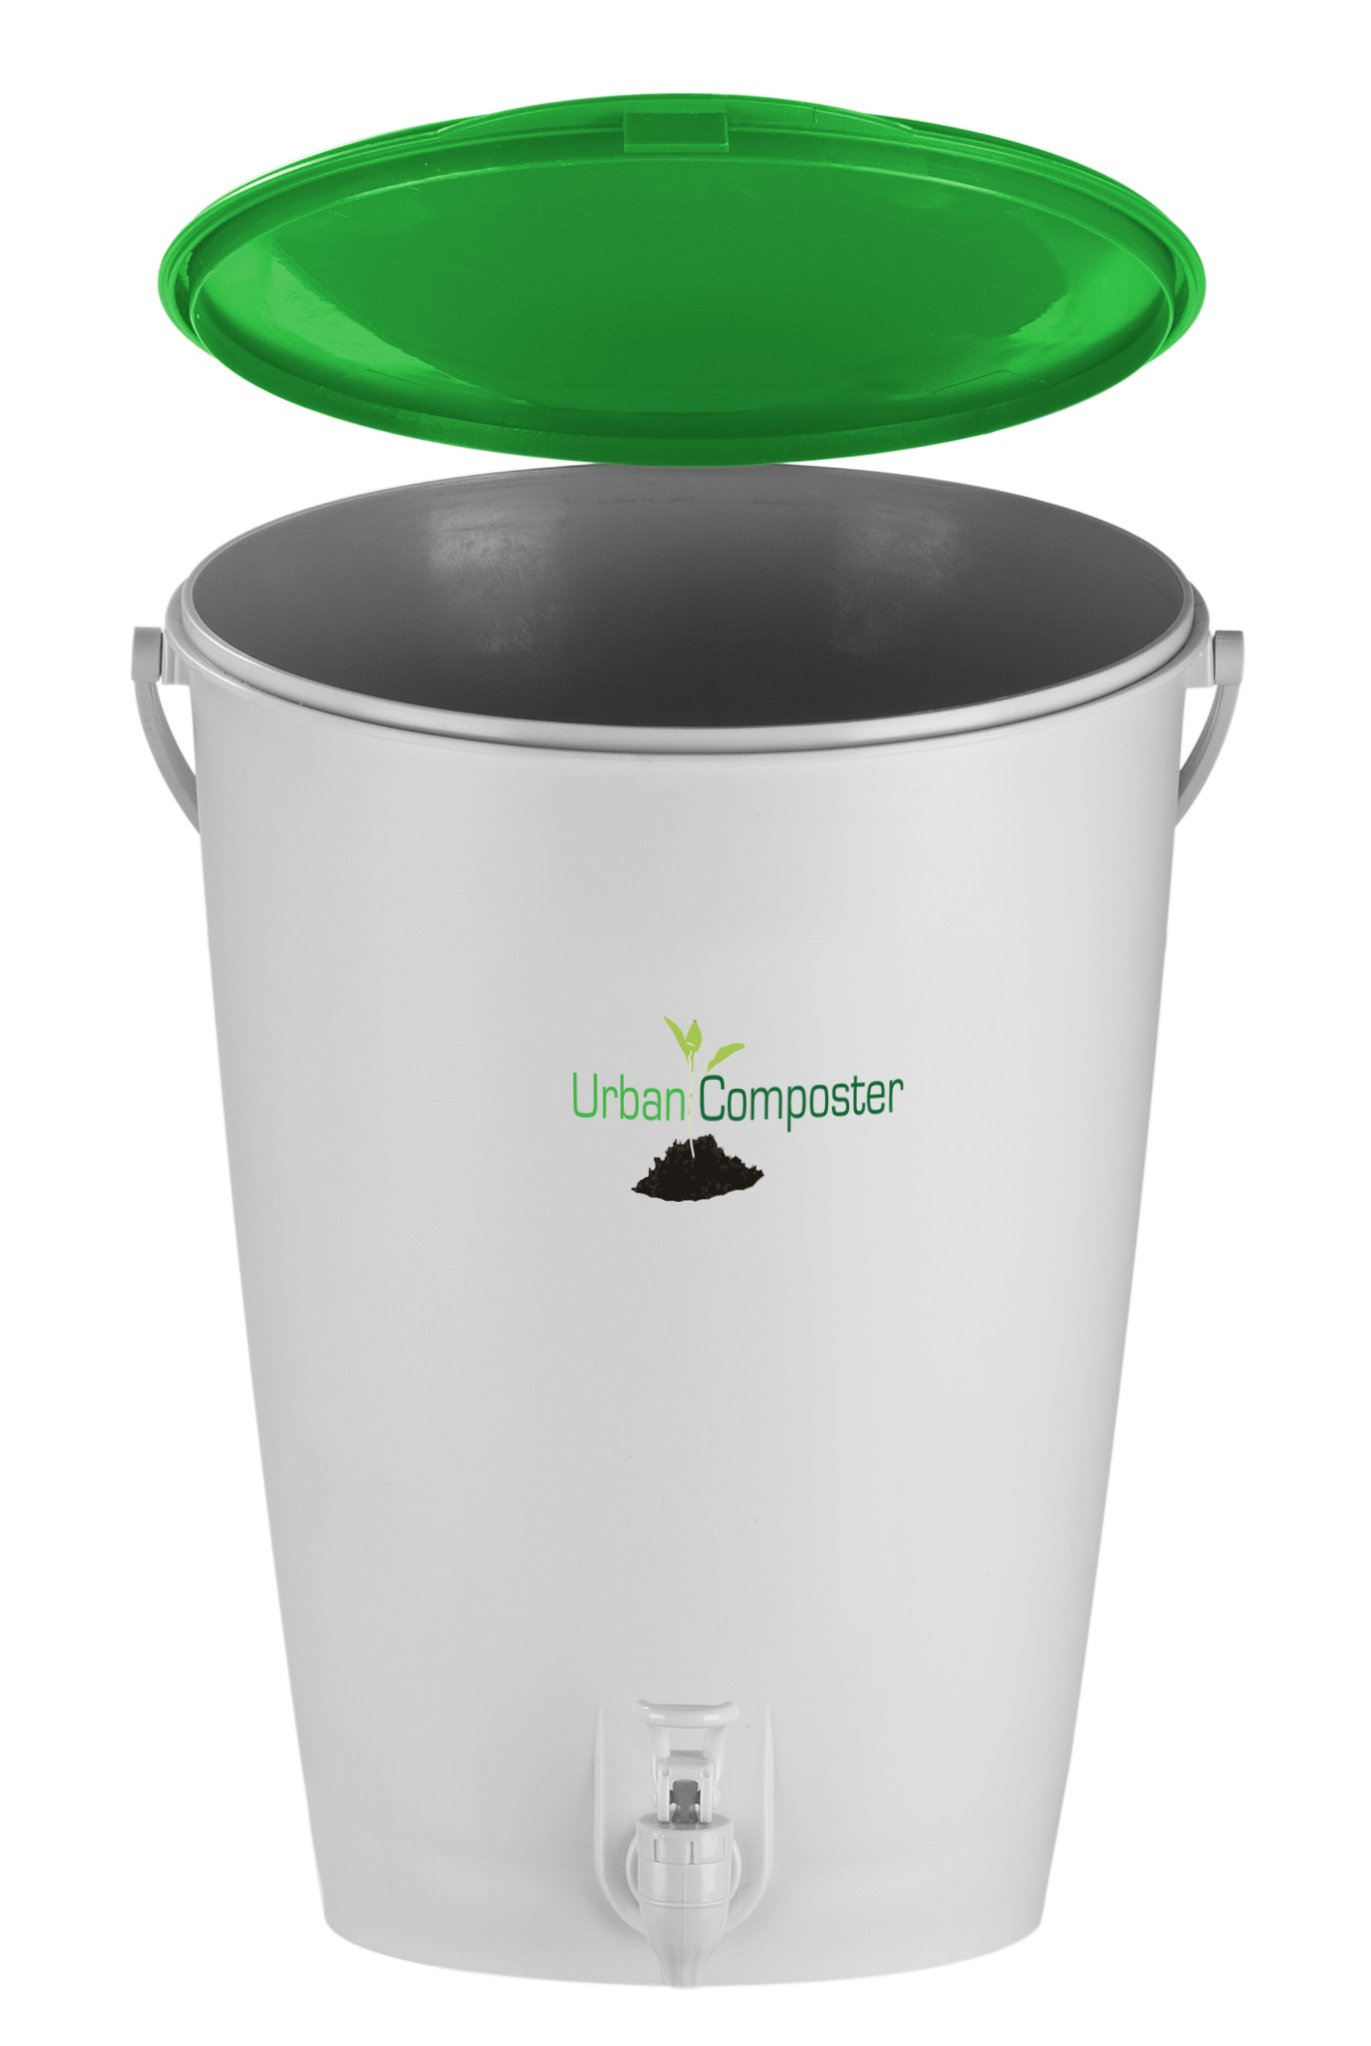 Exaco UClarge-G Urban Composter, 4 Gal, Green